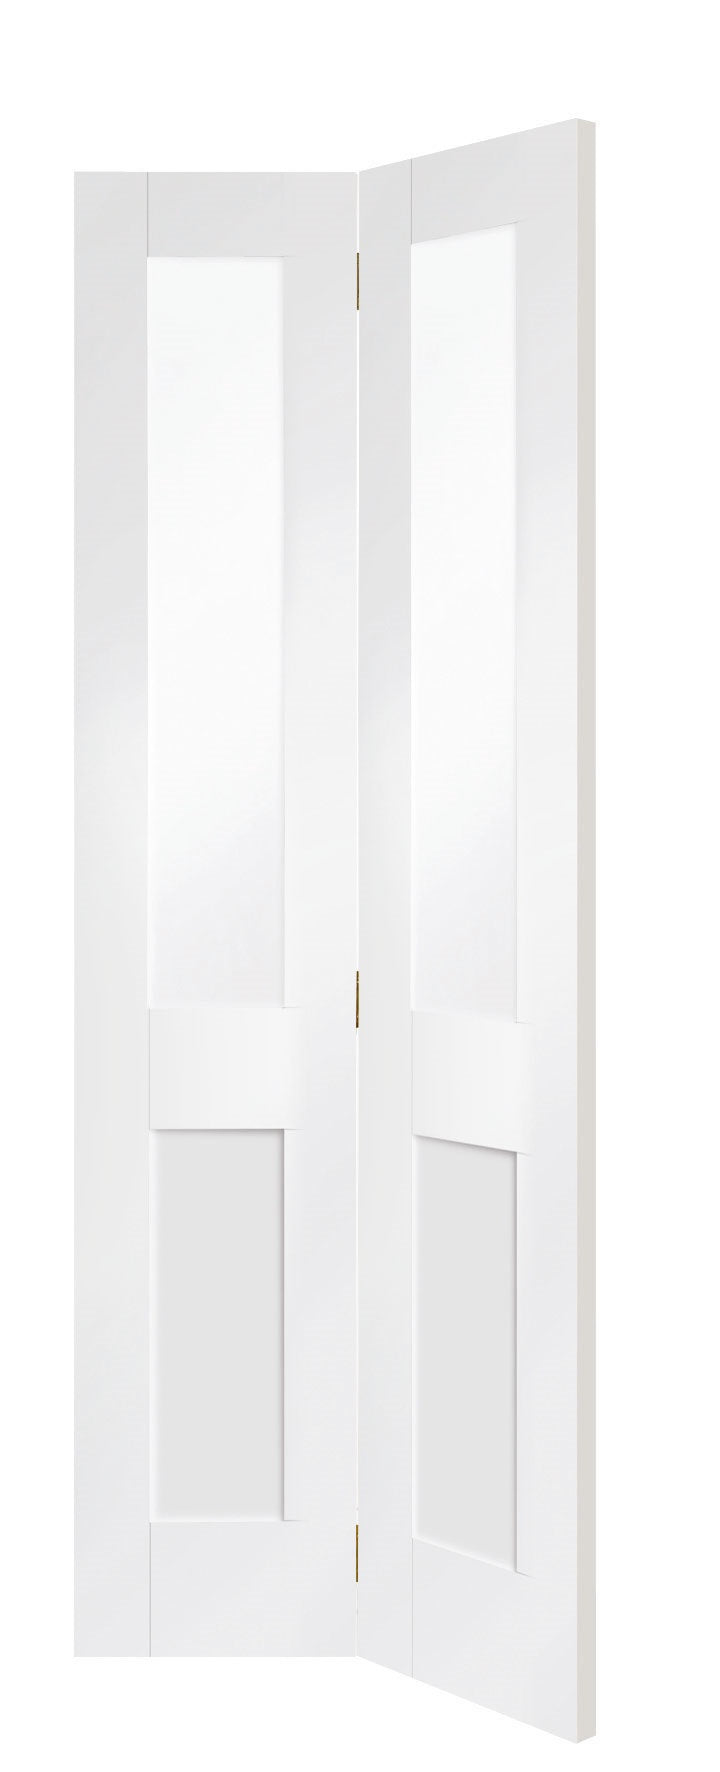 Bardsley 4 Panel room divider 6 Leaf White Prefinished